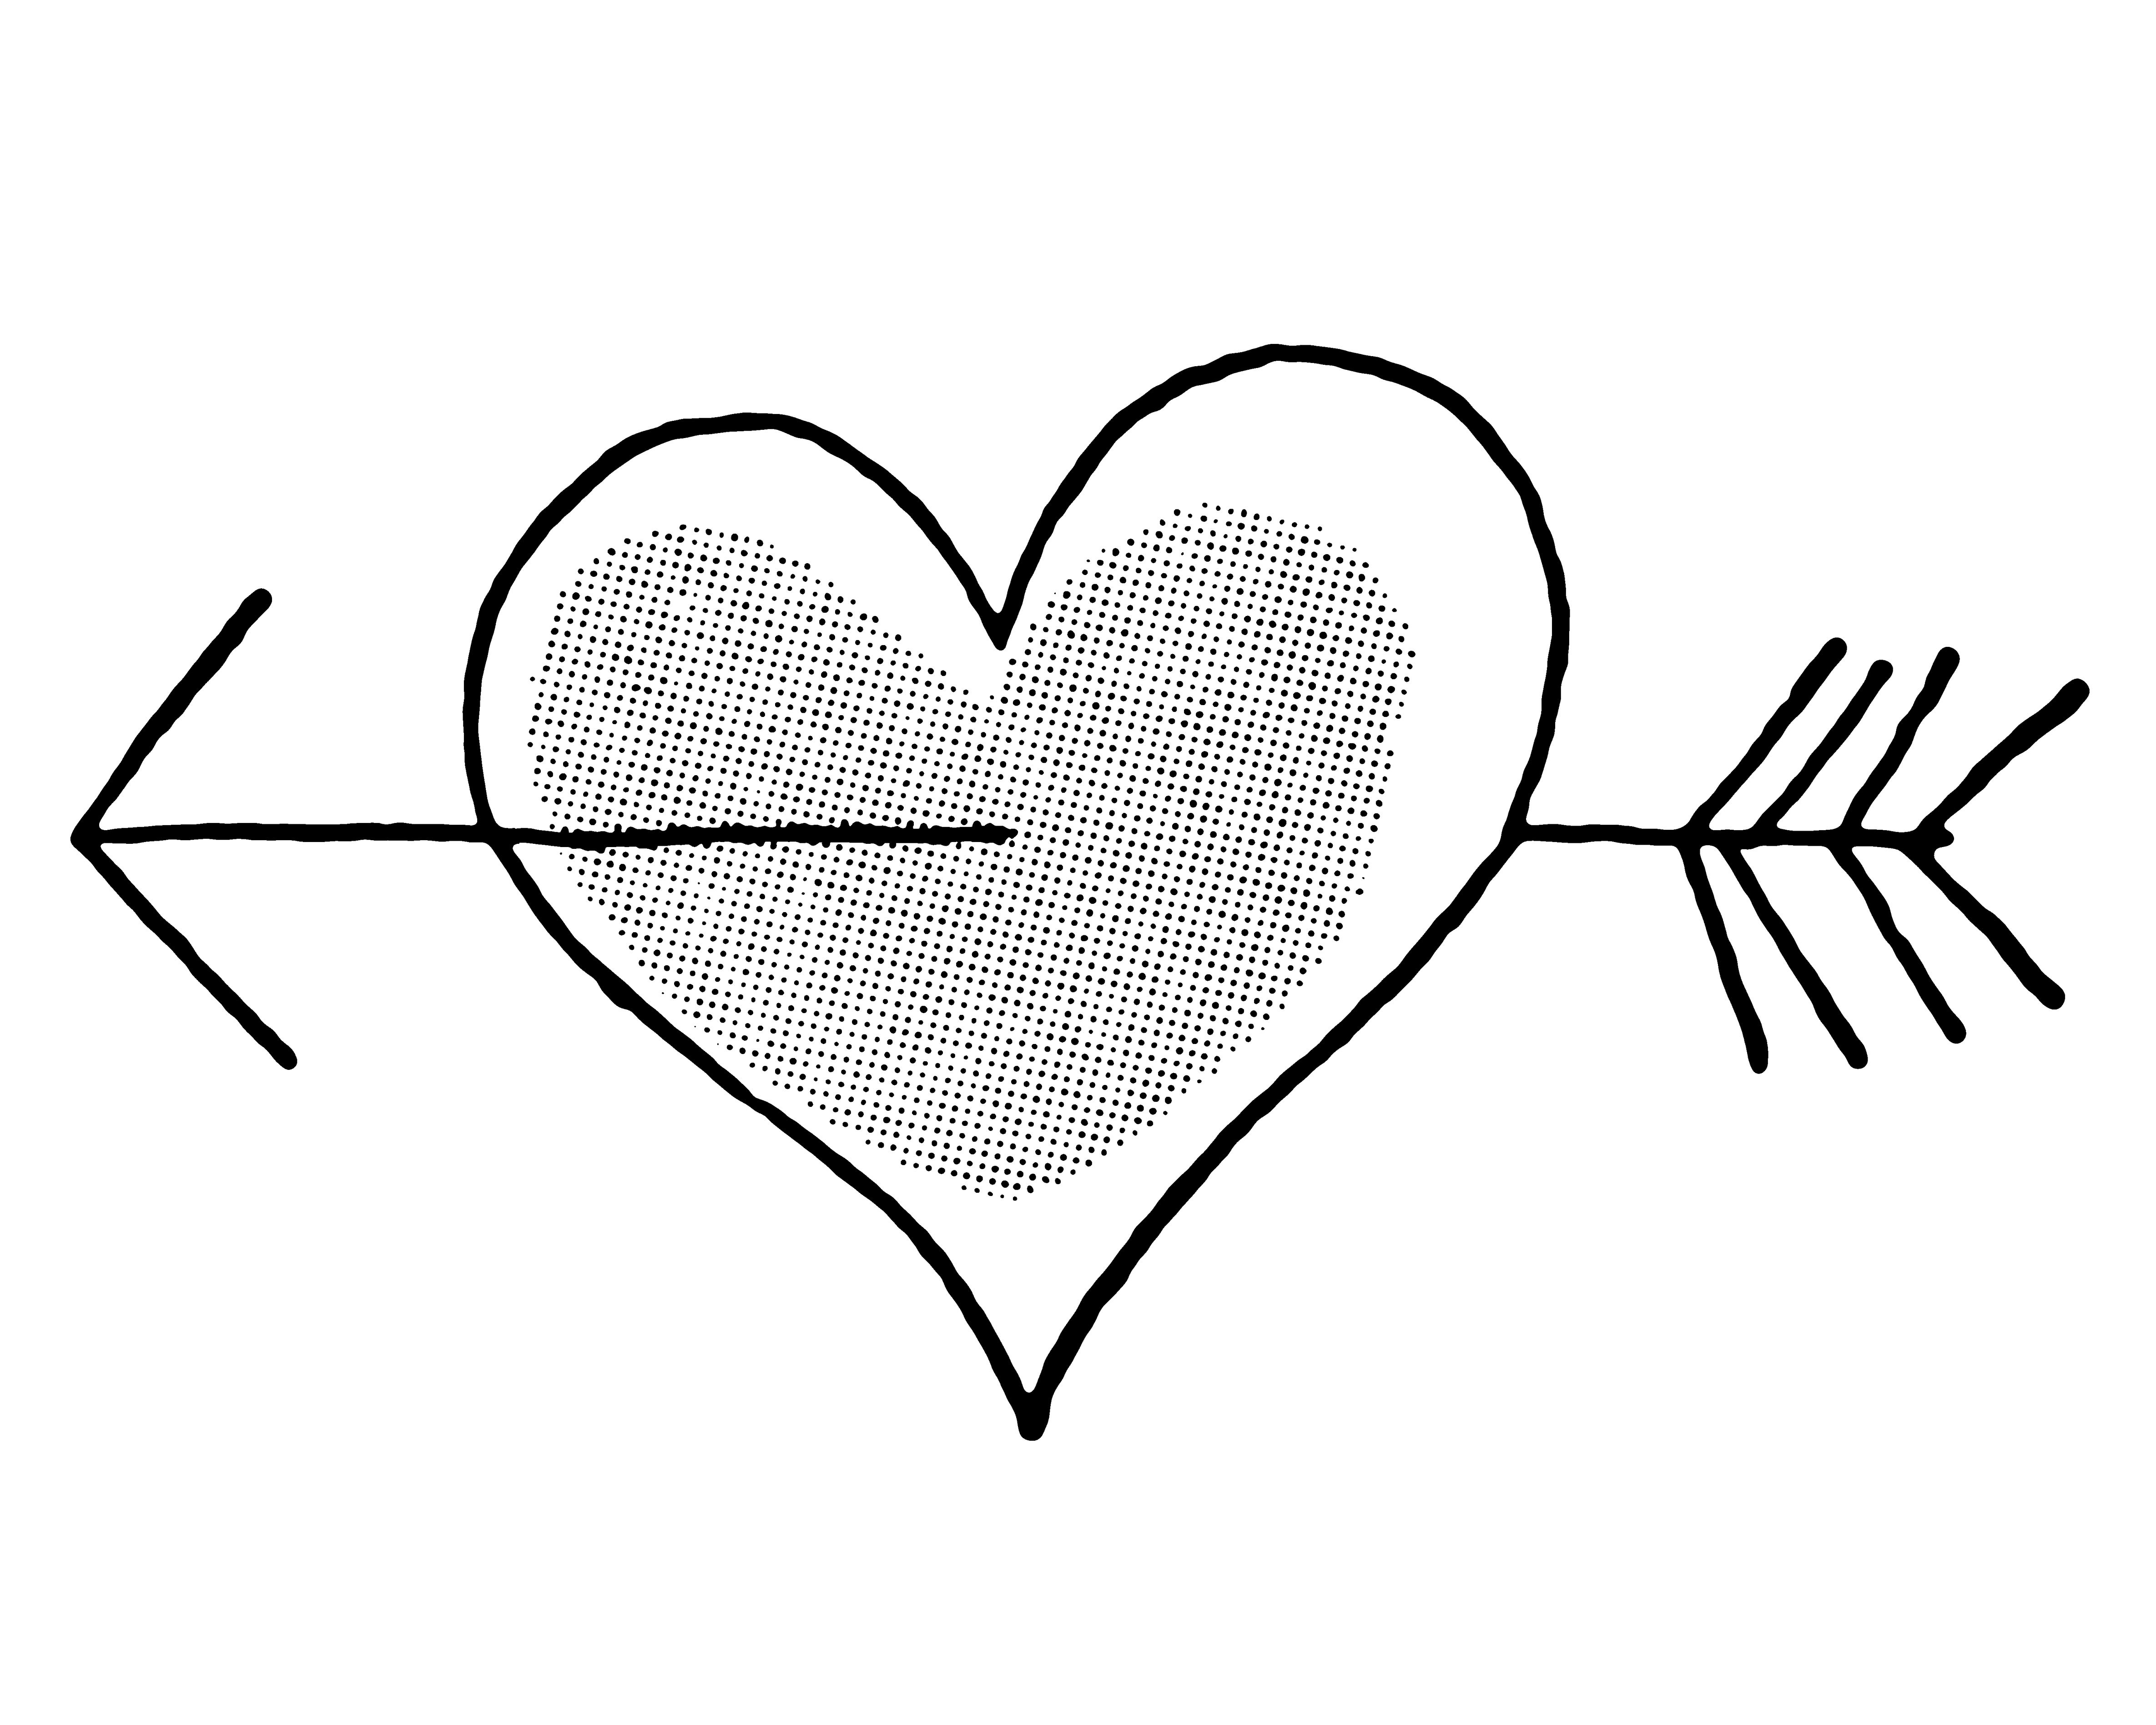 Heart symbols and meaning in art and drawing buycottarizona